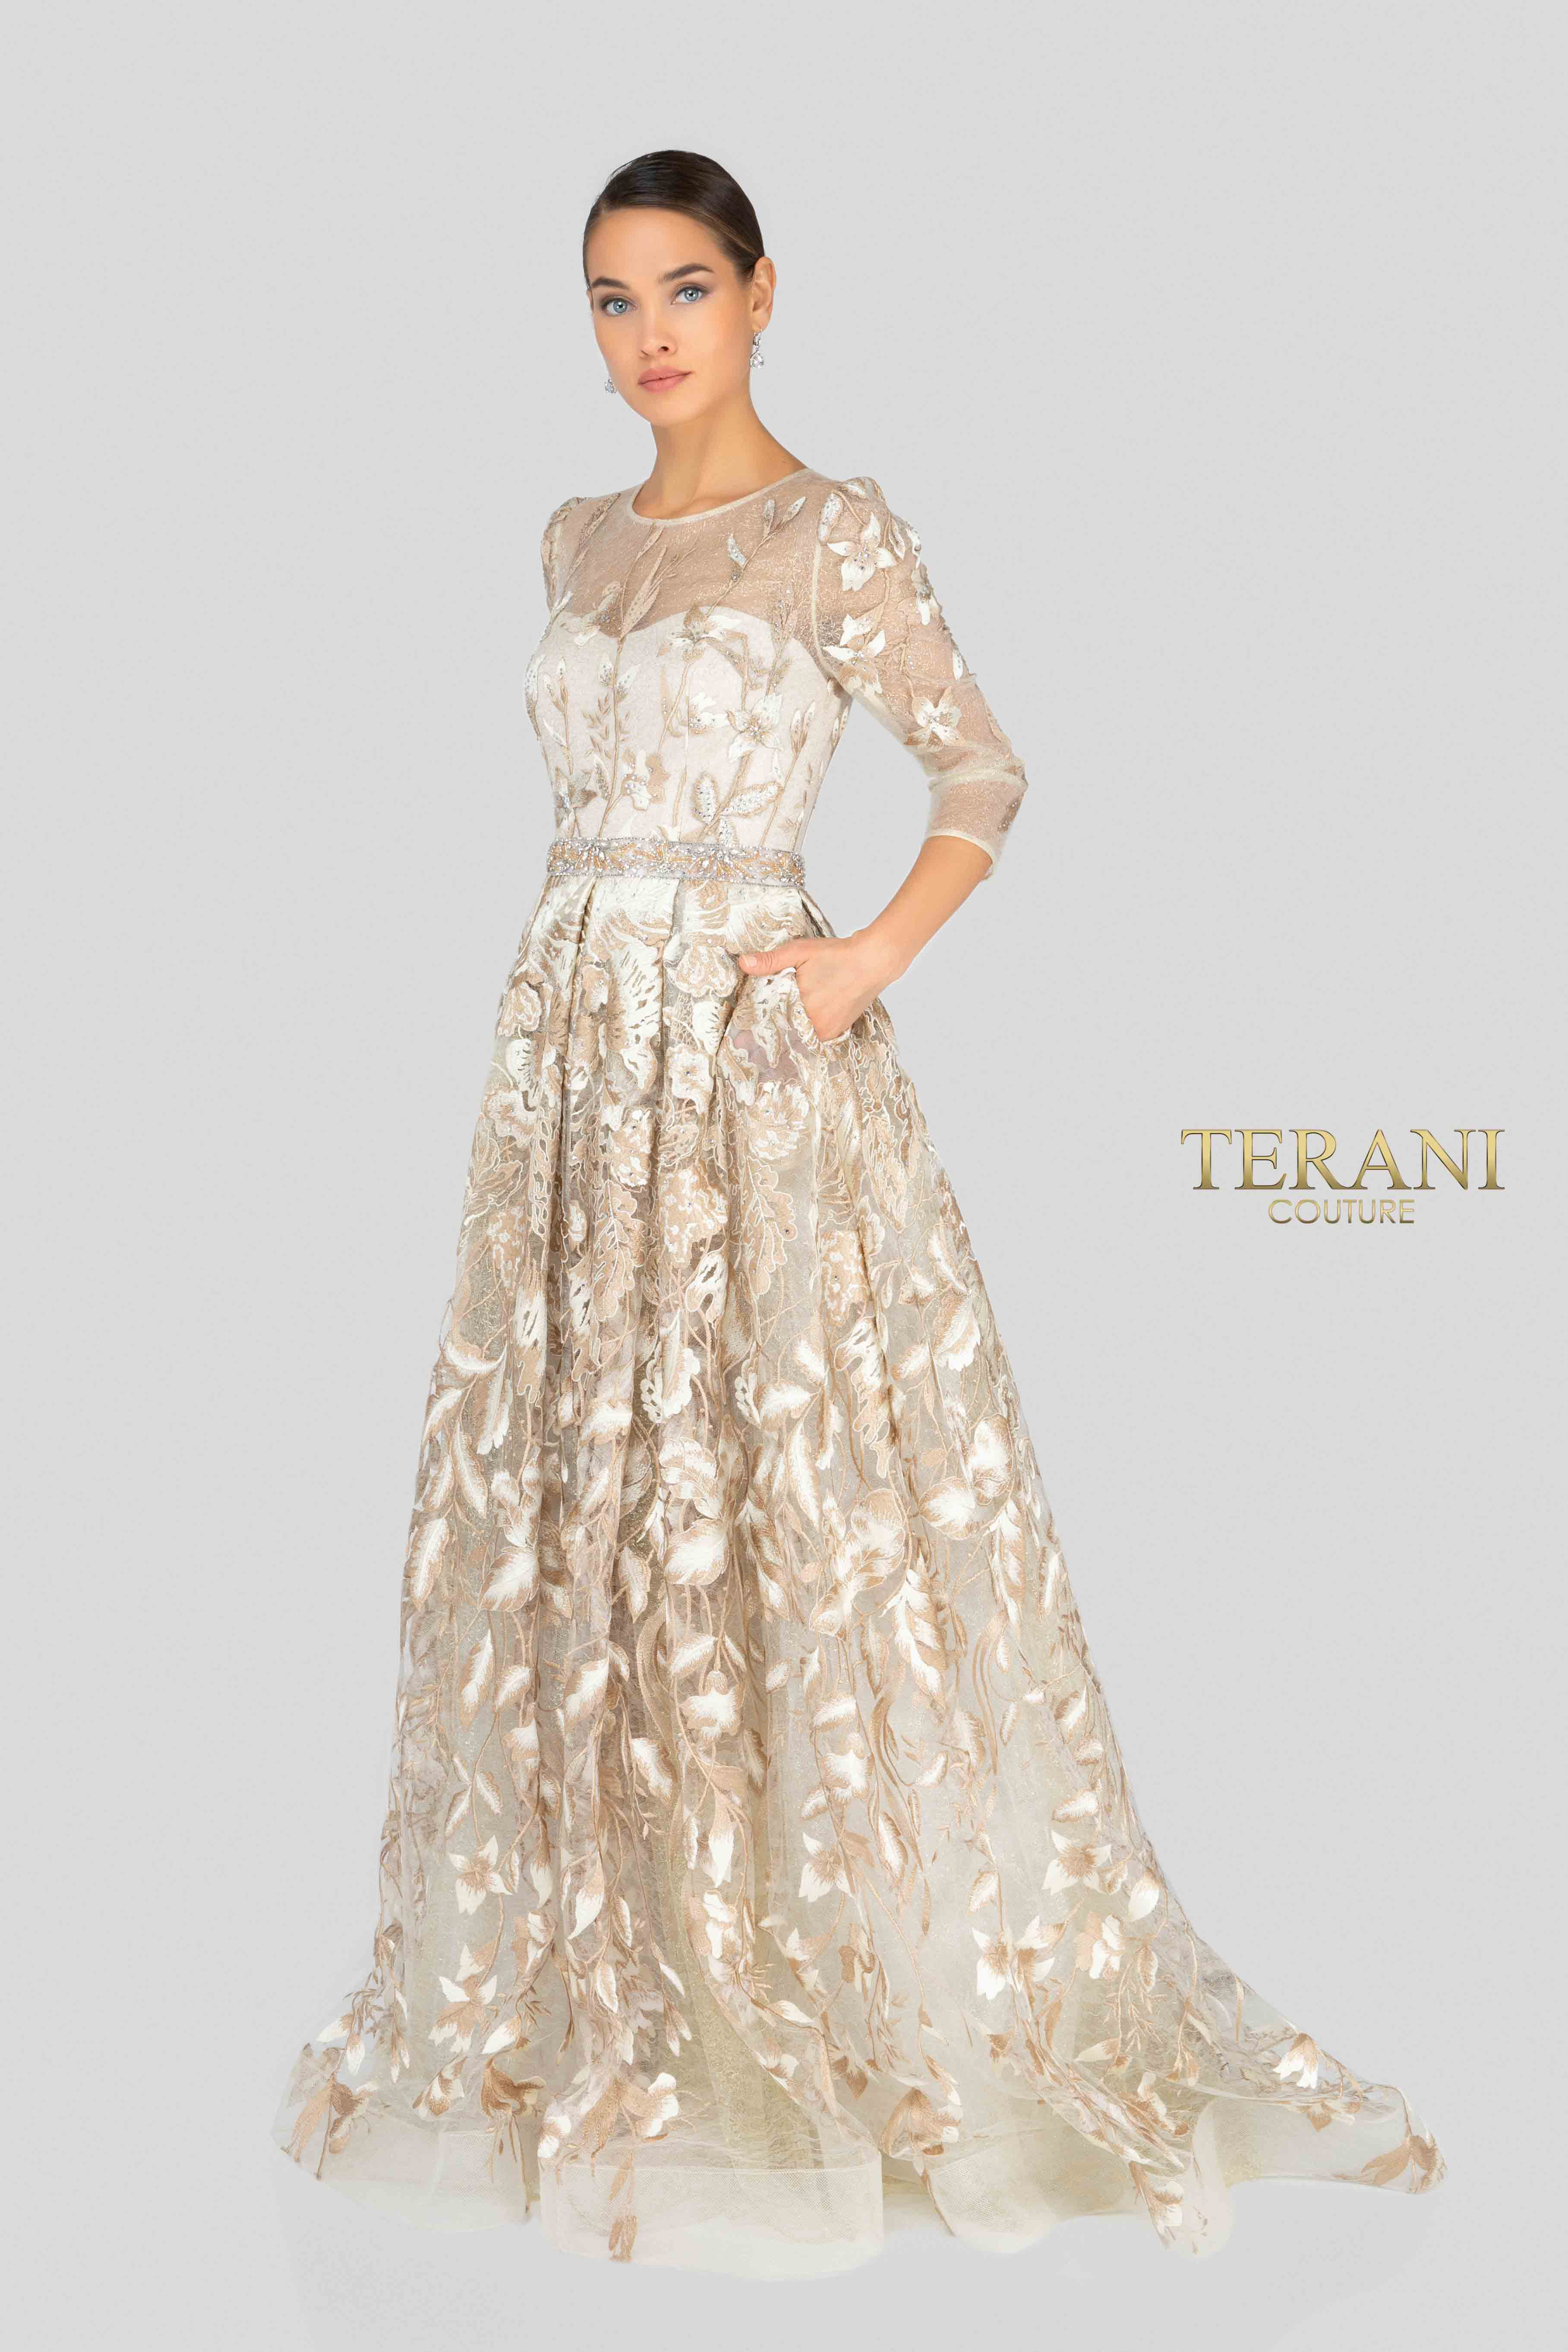 12bf2db2f7 Glamour By Terani Couture High Neck Illusion Beaded Bodice Long Dress